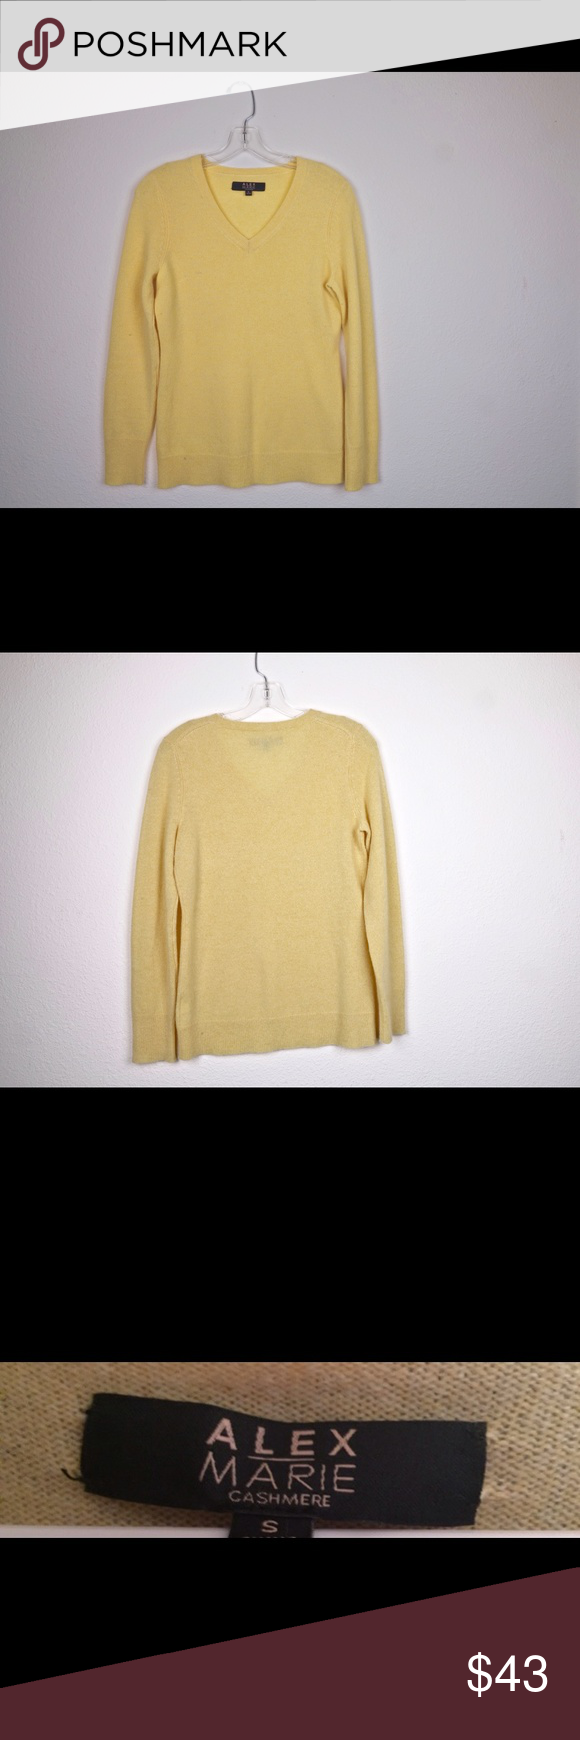 Alex Marie Cashmere Cardigan | Yellow cardigan, Cashmere and Wardrobes